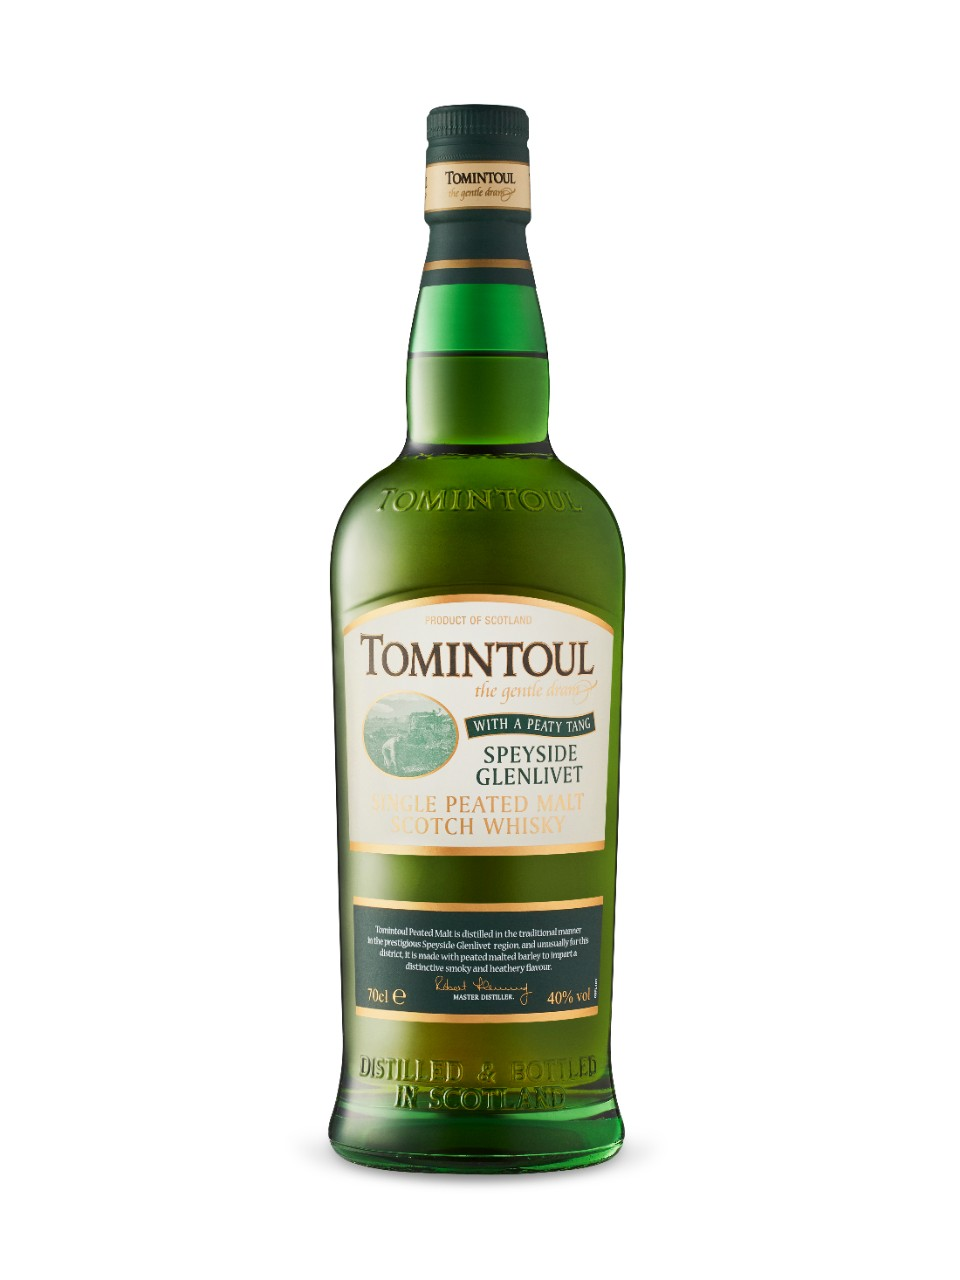 Image for Tomintoul Speyside Glenlivet Peaty Tang Single Malt Scotch Whisky from LCBO